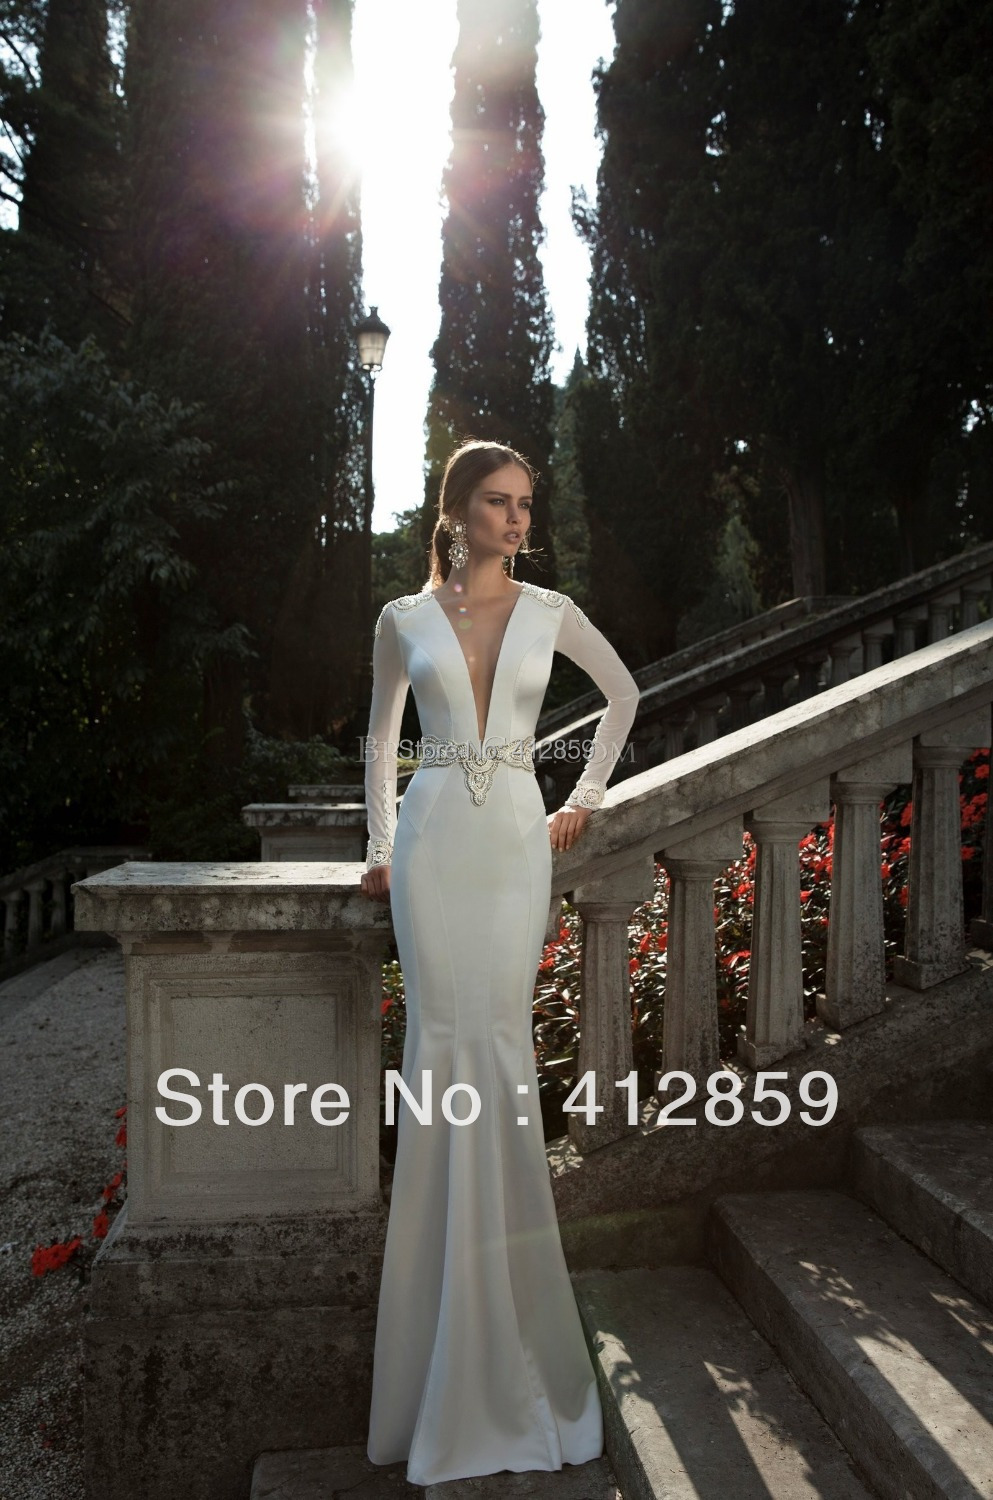 2017 Berta Bridal Spring Deep V Neck Satin Long Sleeves White Wedding Gowns Elegant Dresses In From Weddings Events On